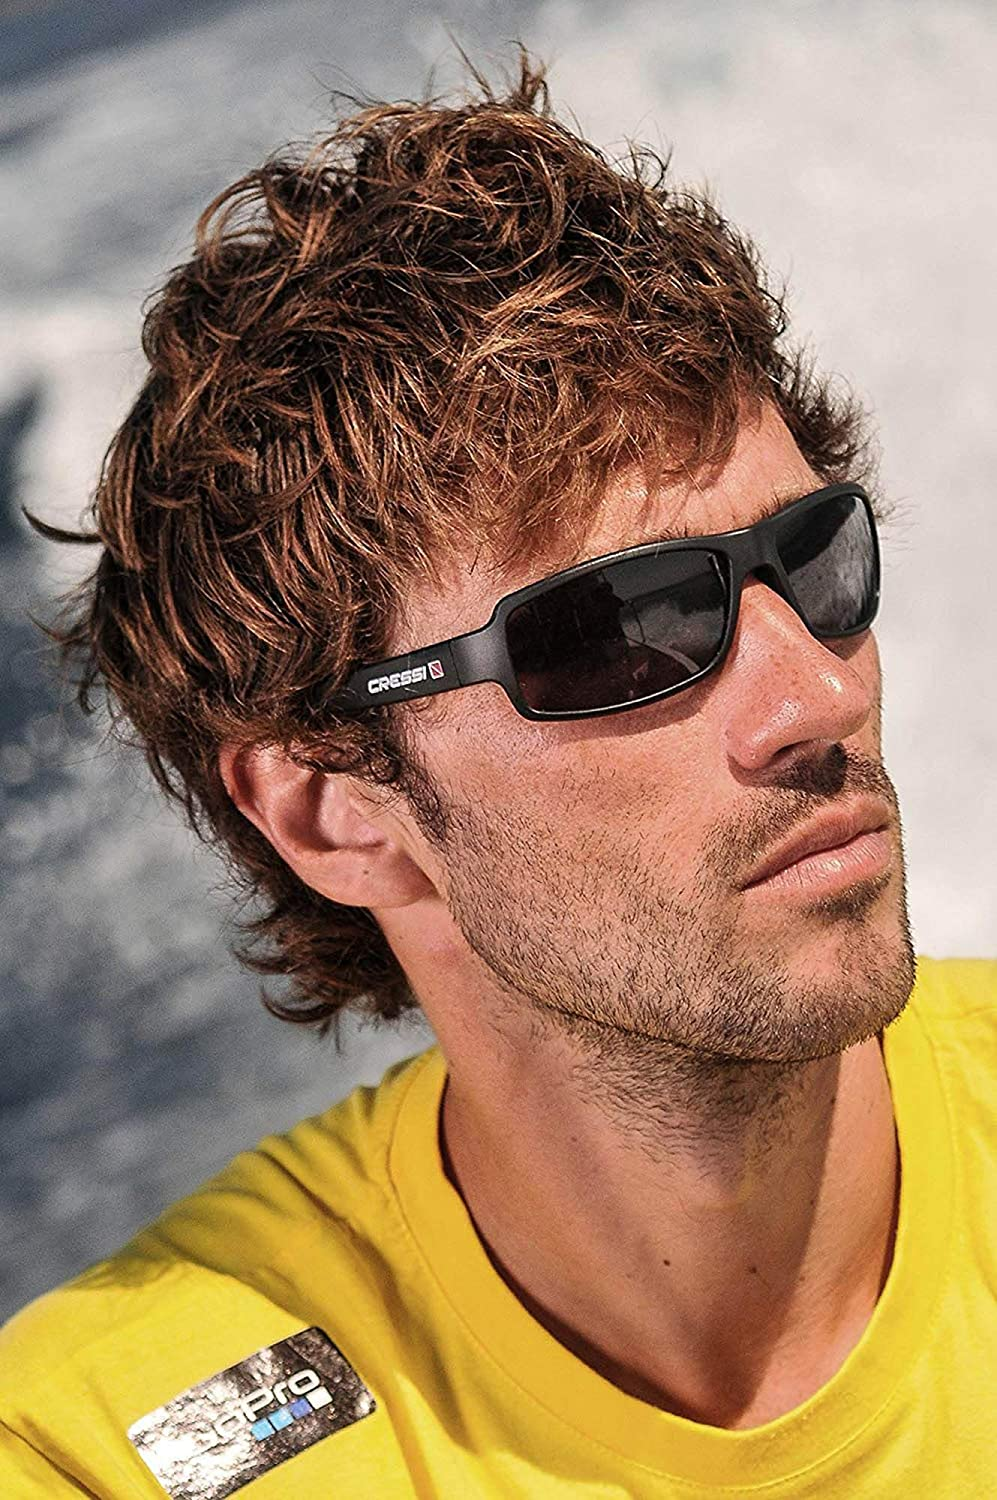 Cressi Men/'s Sunglasses Available in Floating and in Ultra Flexible Version